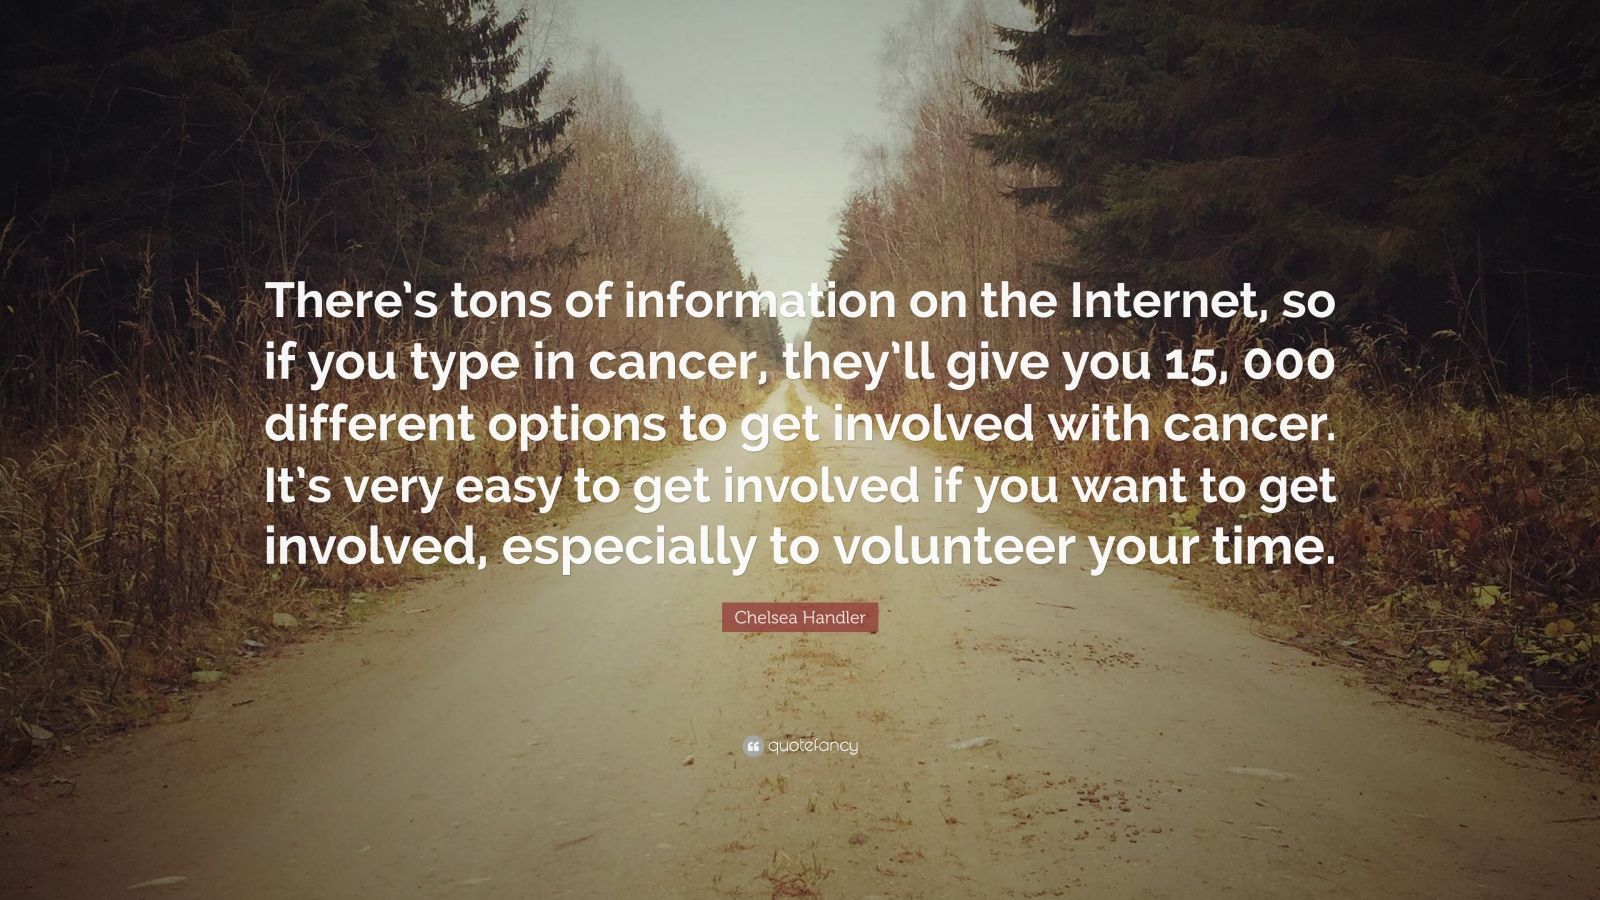 """Chelsea Handler Quote: """"There's tons of information on the Internet, so if you type in cancer, they'll give you 15, 000 different options to get involved with cancer. It's very easy to get involved if you want to get involved, especially to volunteer your time."""""""